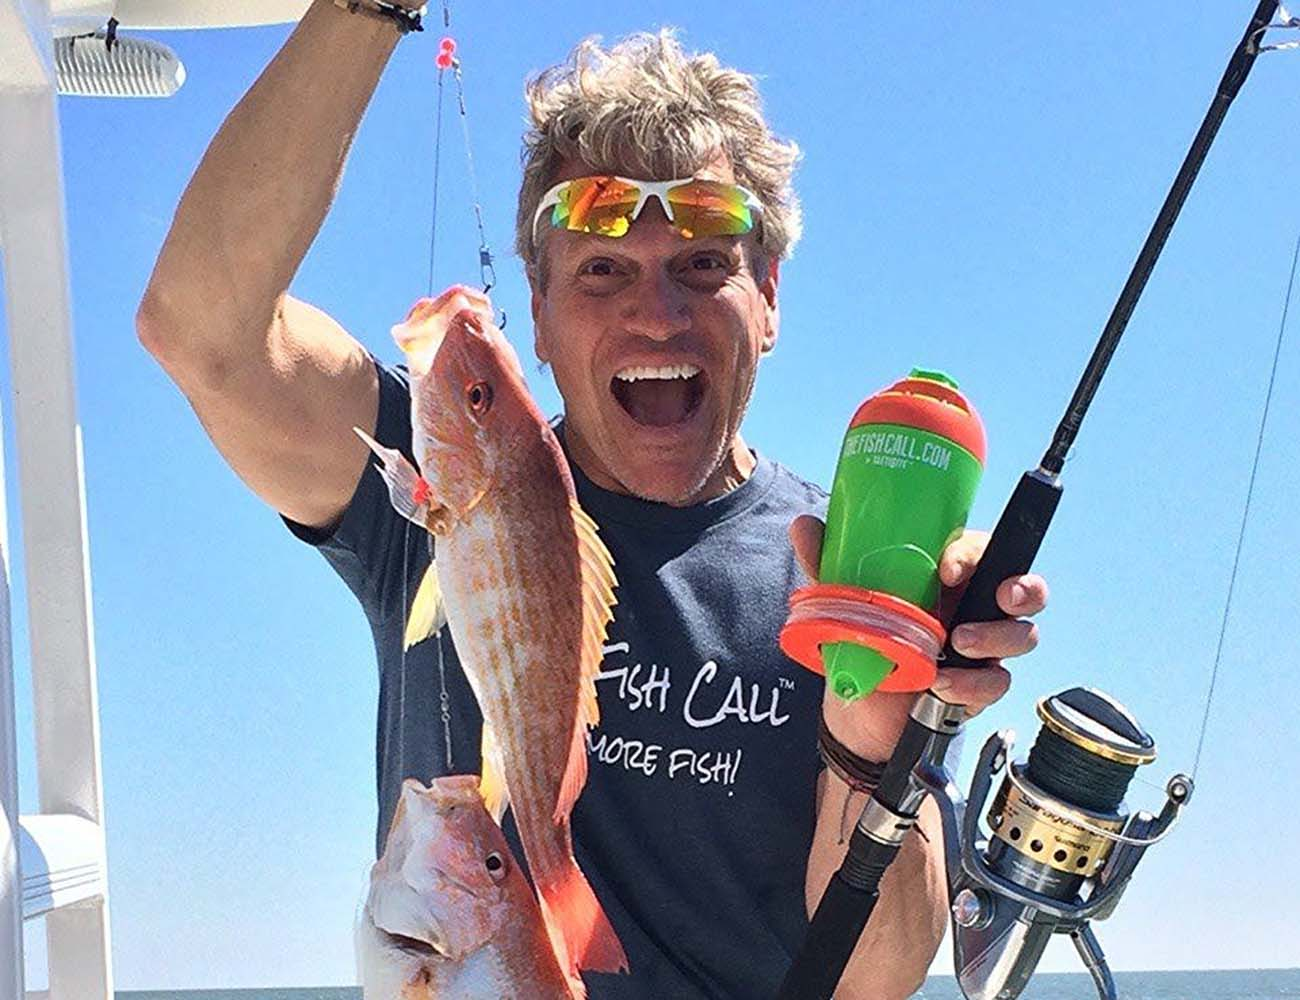 The Fish Call: The Future of Fishing